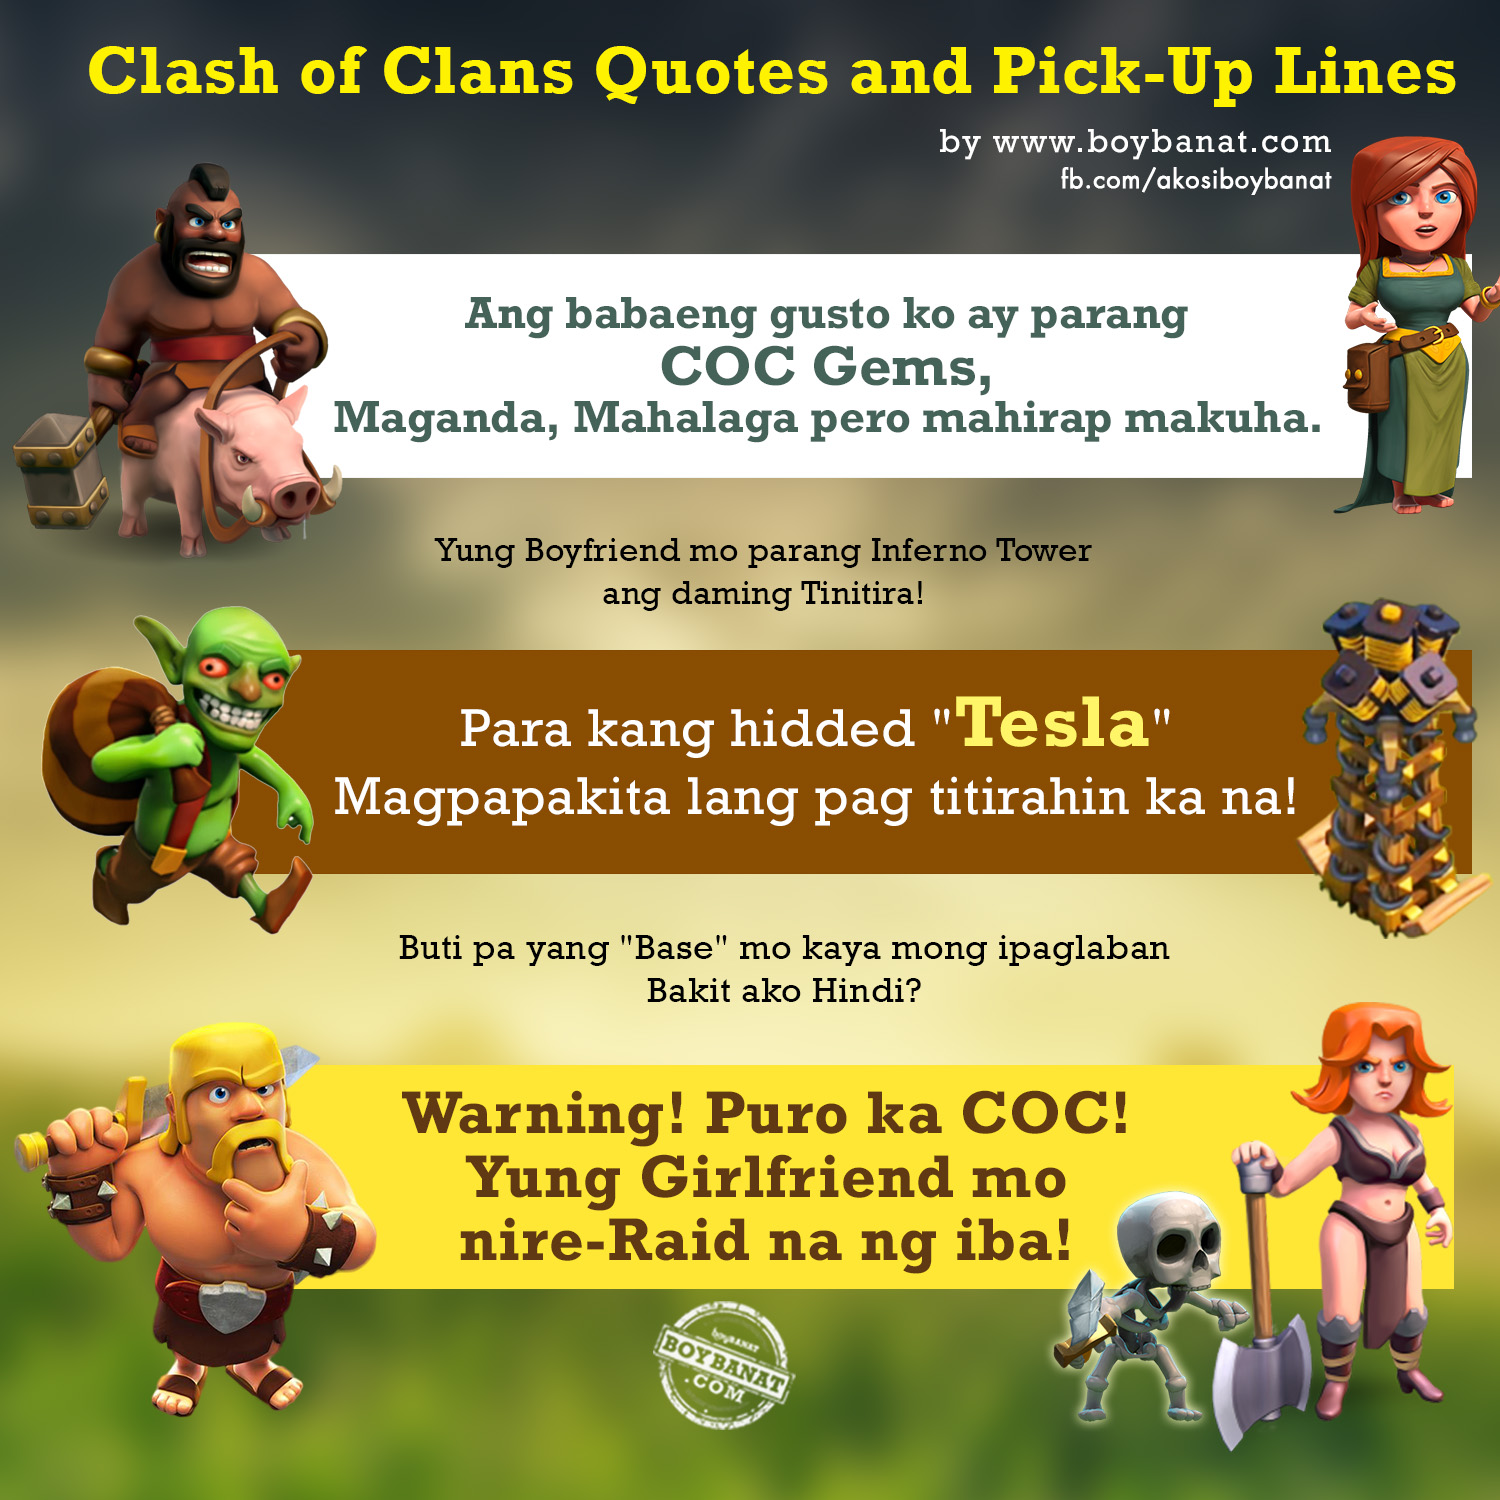 clash of clans coc quotes and pick up lines boy banat